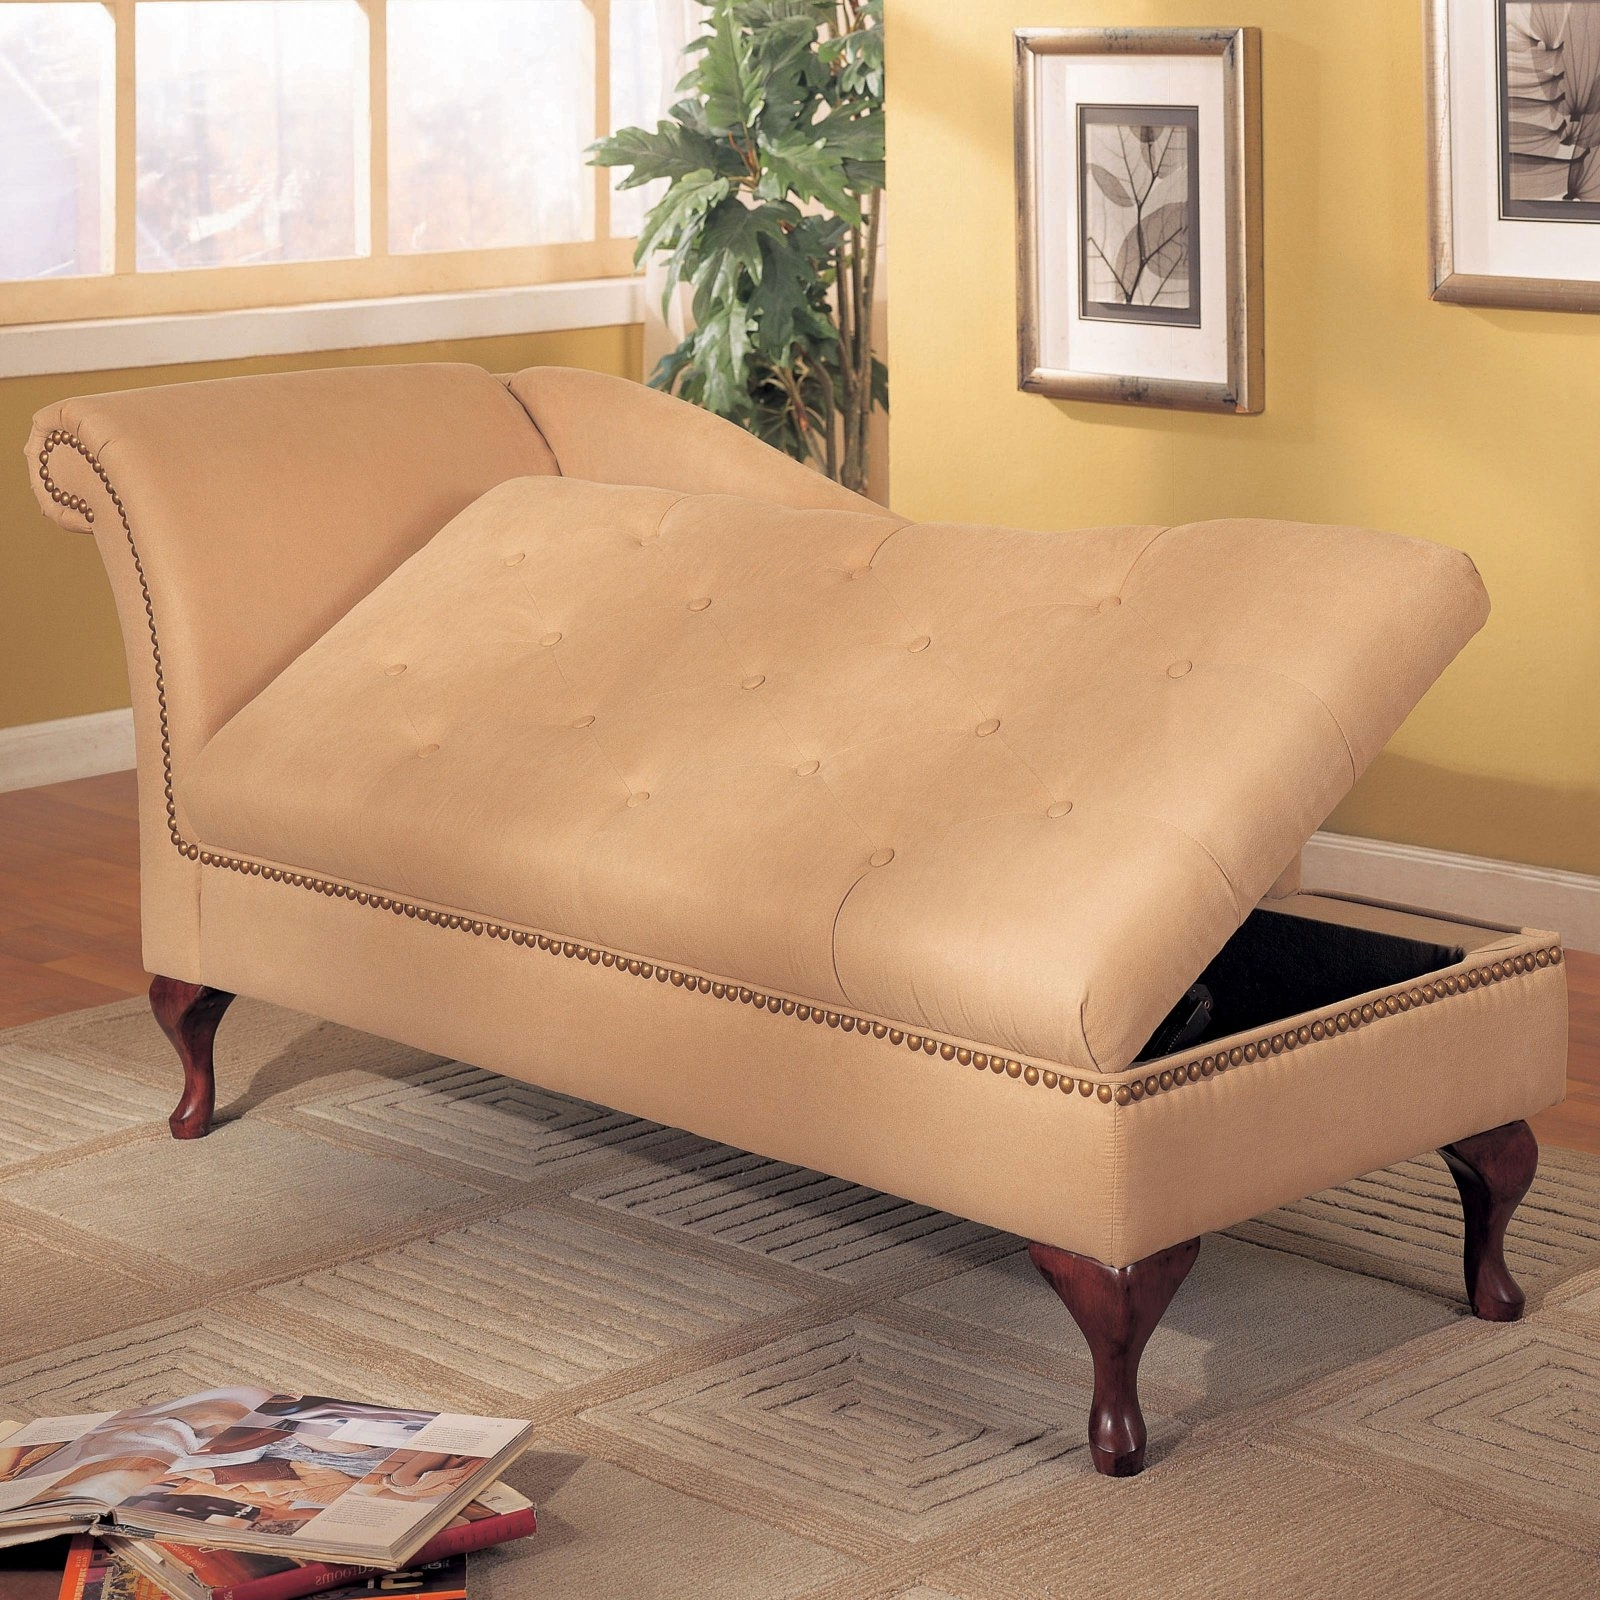 Recent Indoor Chaise Lounges Pertaining To Indoor Chaise › Indoor Chaise Lounge With Storage Chaise Lounges (View 7 of 15)